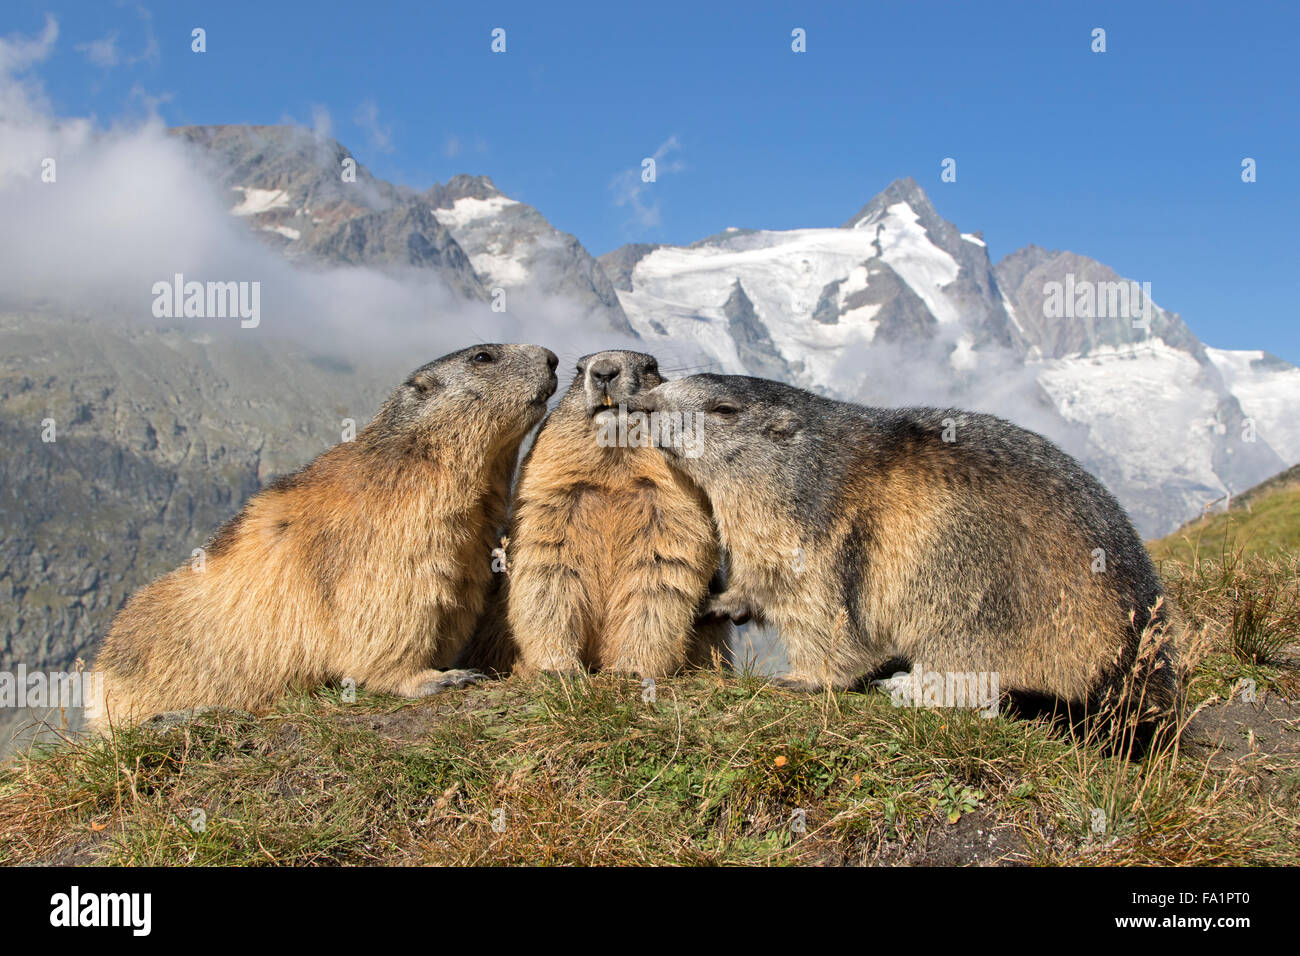 Alpine marmot in front of Großglockner, High Tauern National Park, Carinthia, Austria, Europe / Marmota marmota - Stock Image